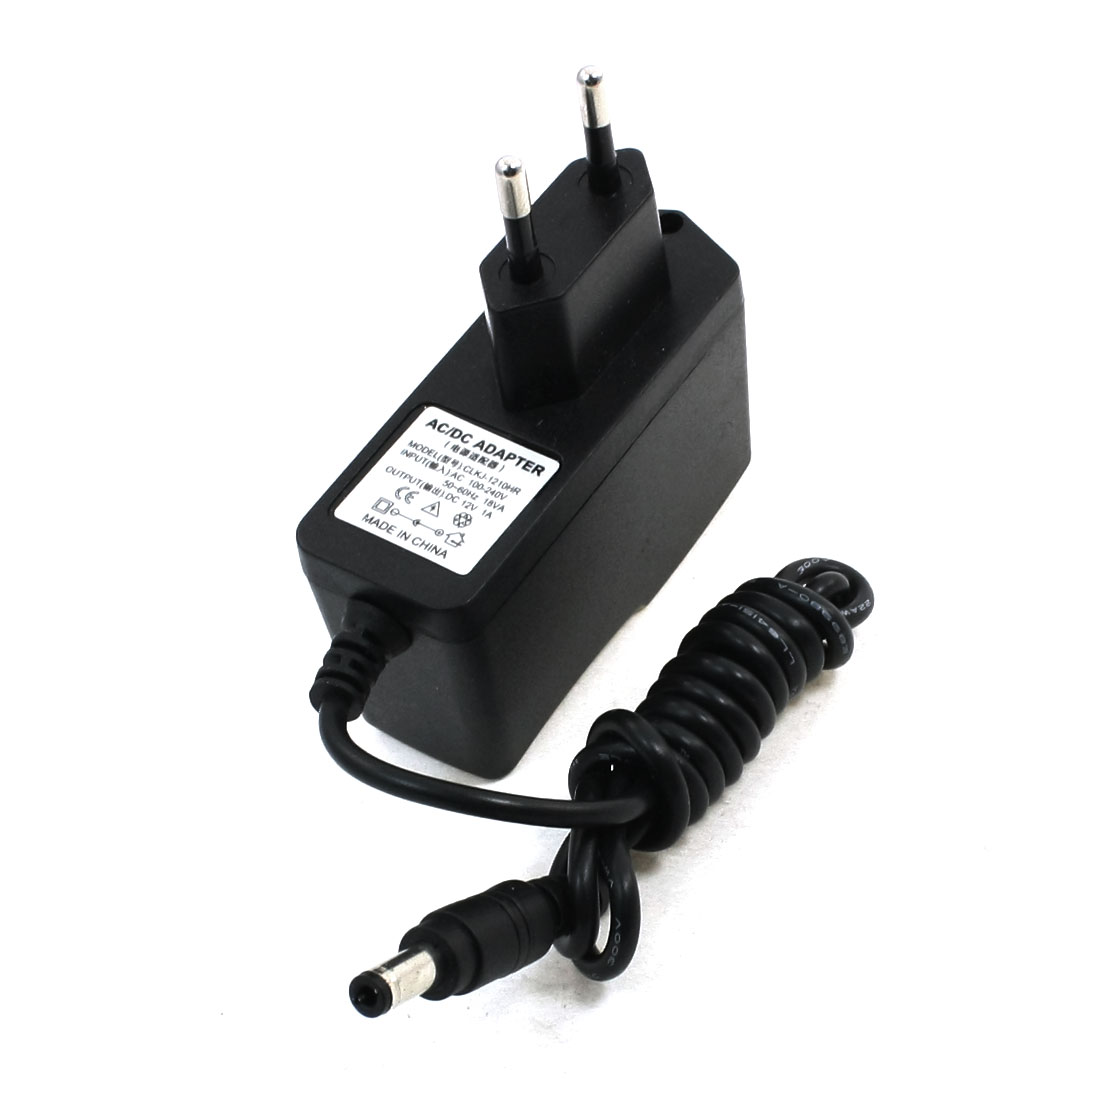 100-240V 12V 1A AC/DC Converter Adapter Power Charger 5.5x2.5mm EU Plug